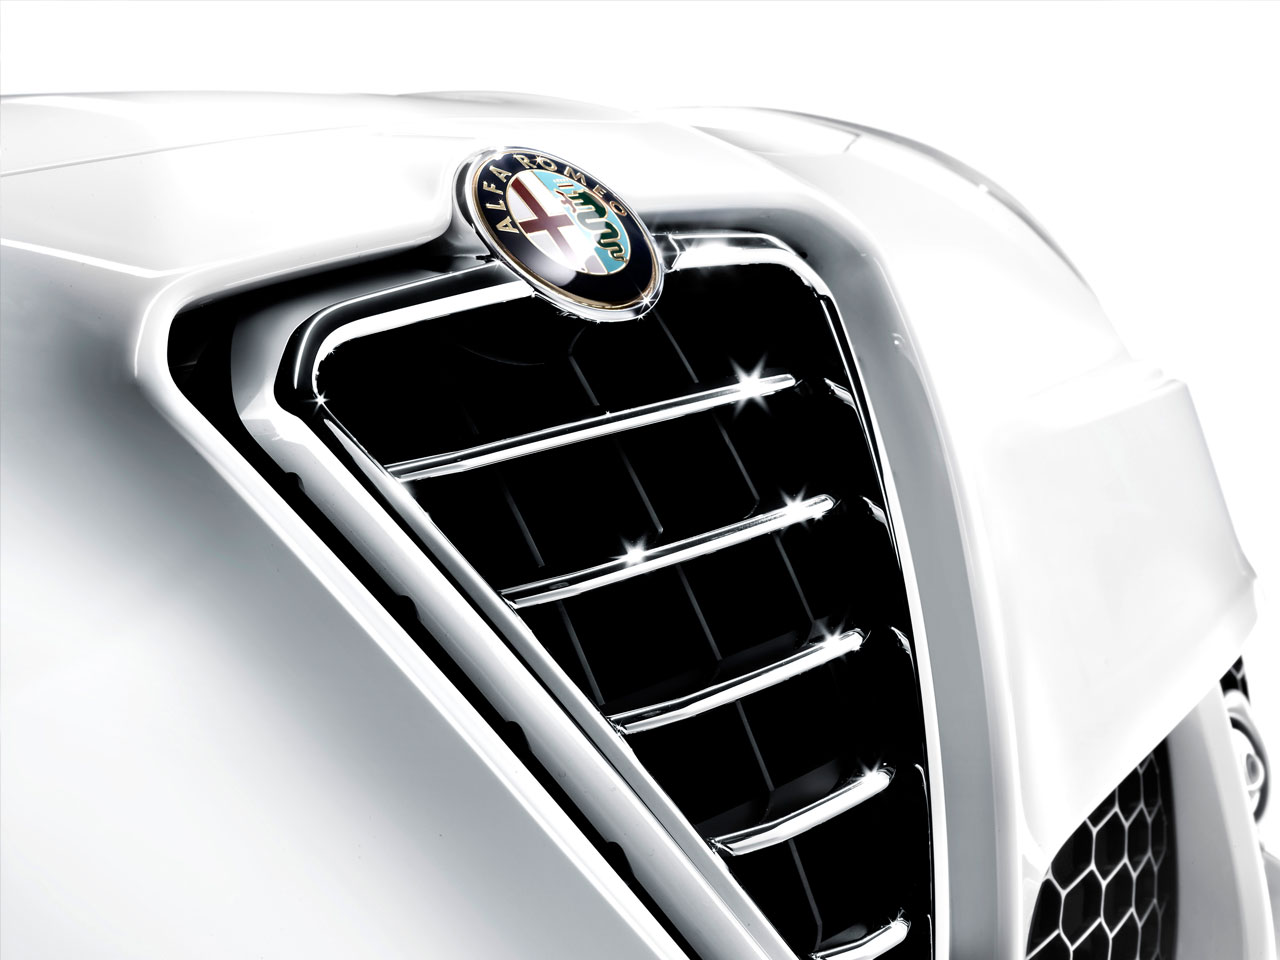 alfa romeo giulietta offerte km 0 with 5 on 120146237 besides 5ace04bf8ead0ee008718986 as well 5a7588338ead0eeb4a1163ff furthermore 5ace04bf8ead0ee008718986 also 90787.